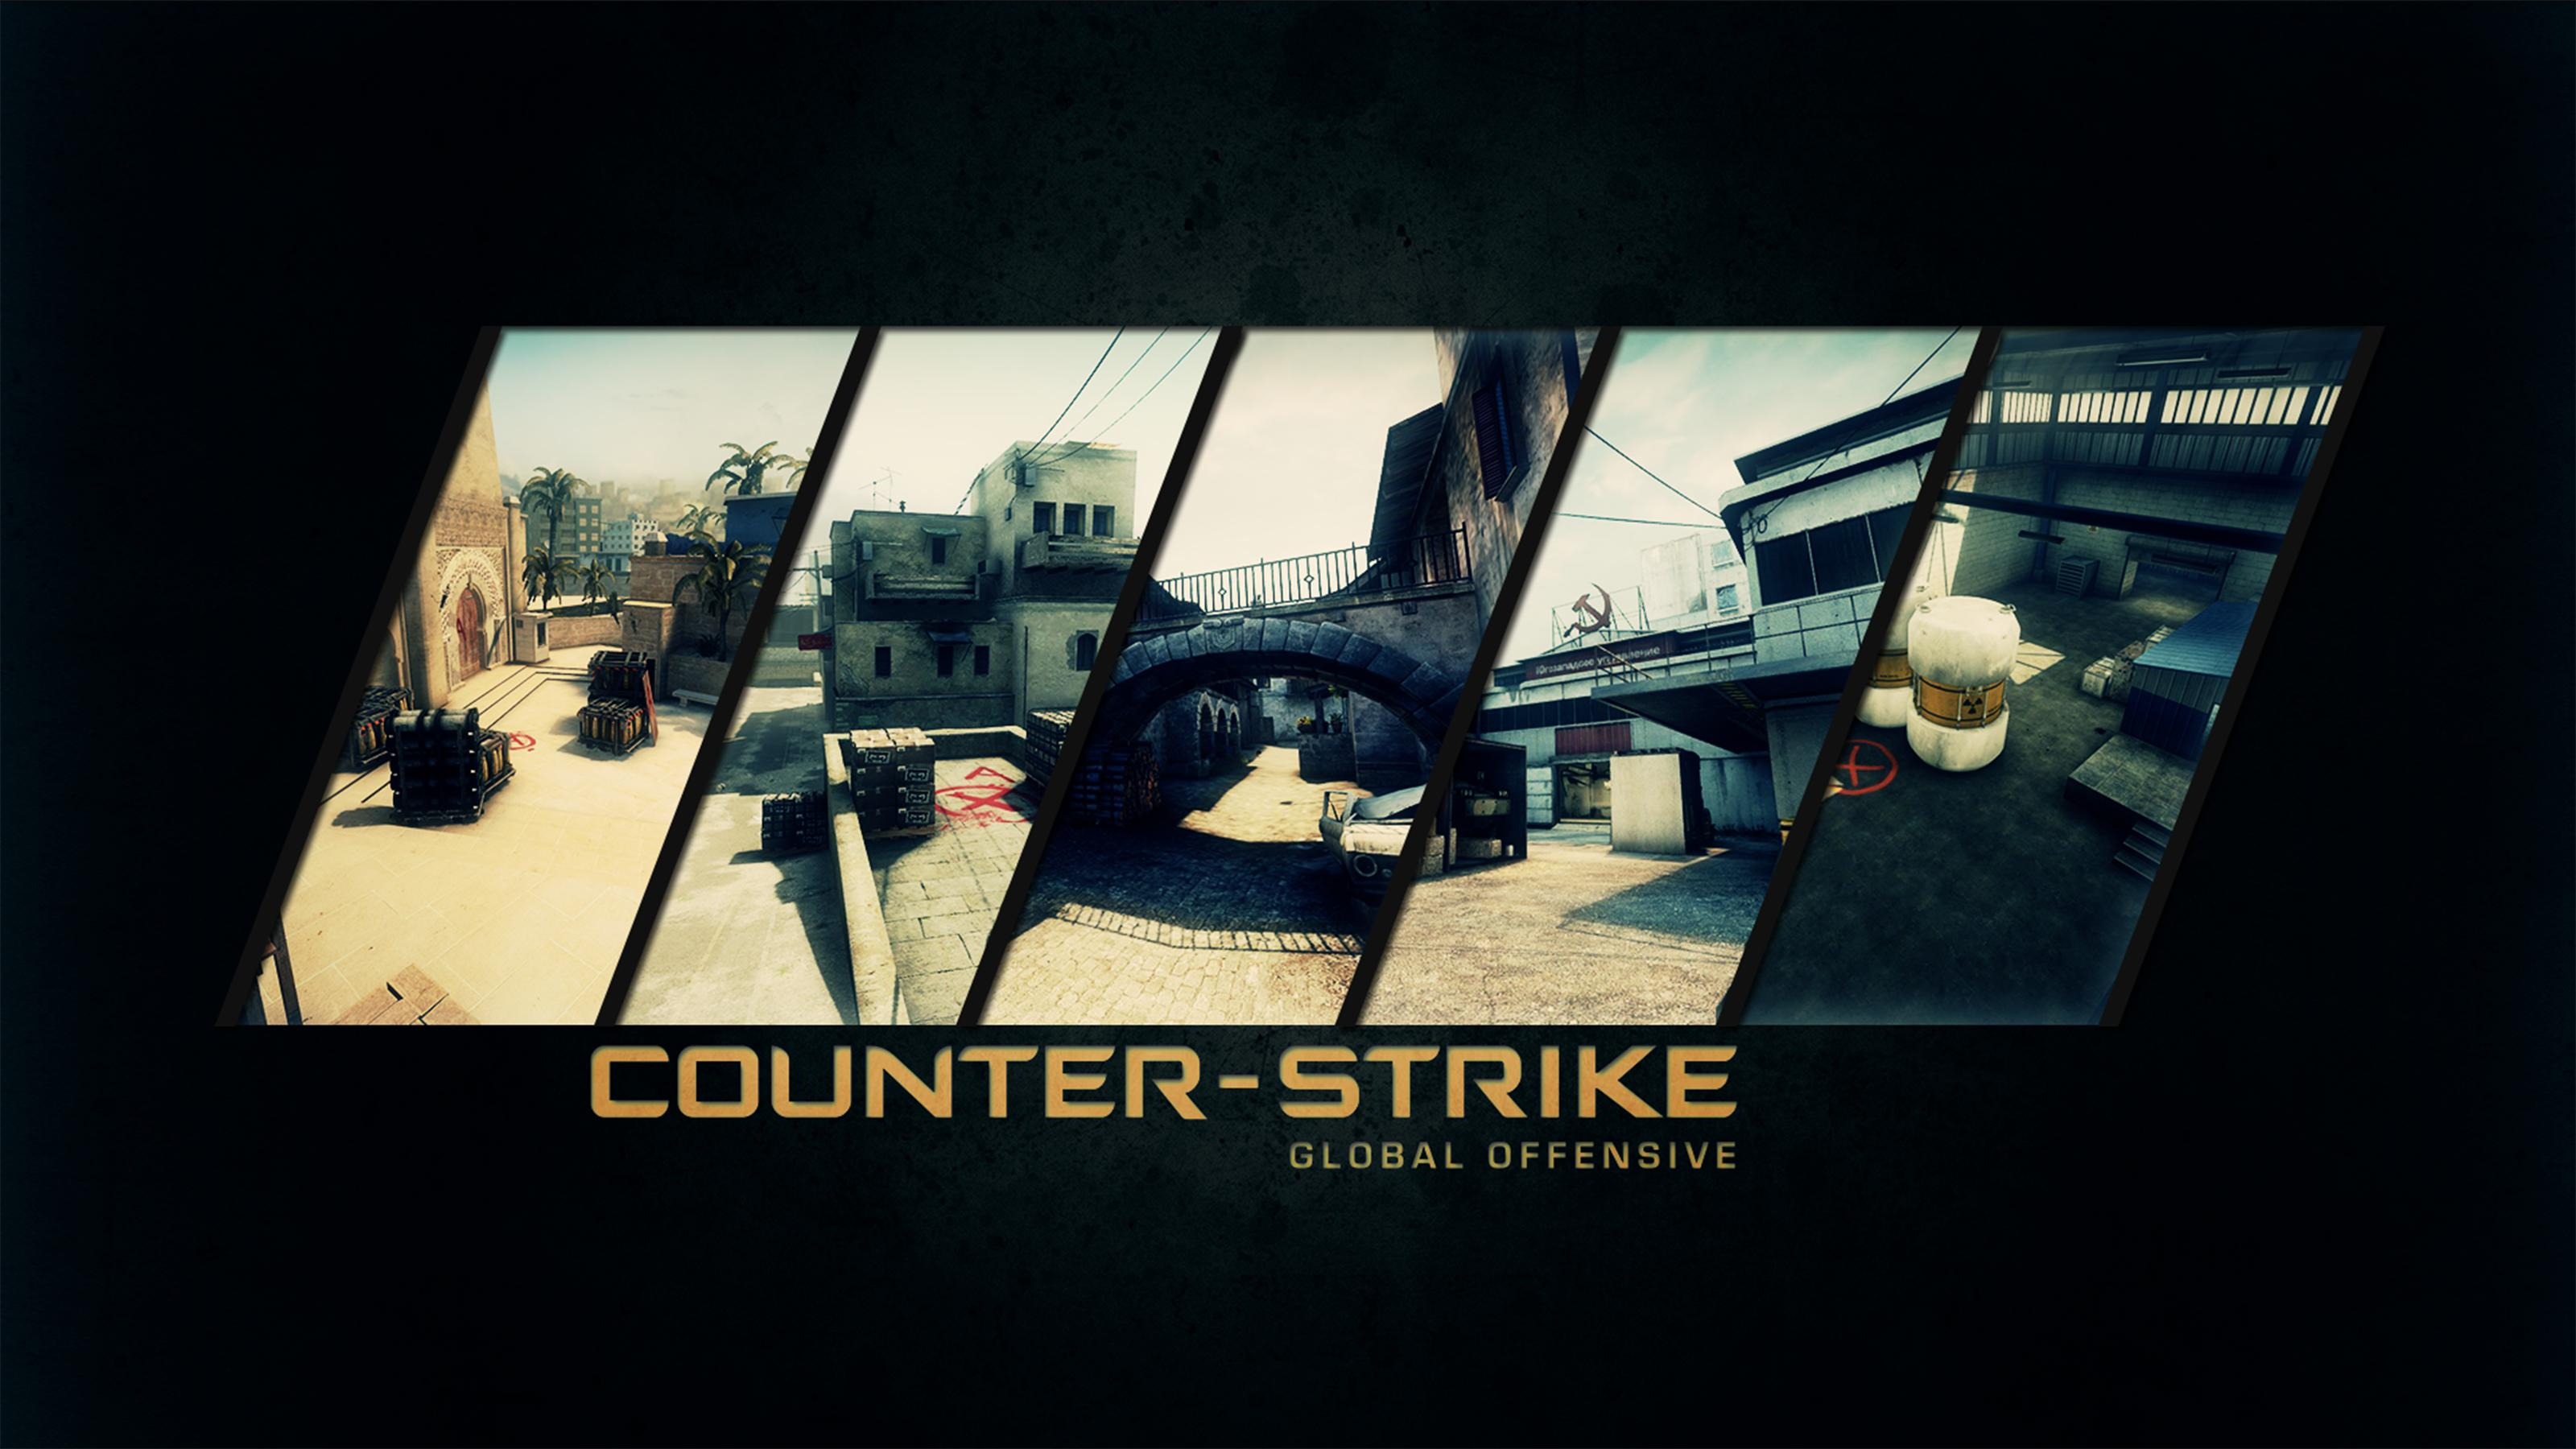 Counter Strike Global Offensive Wallpaper Hintergrundbild HQ 2014 3200x1800